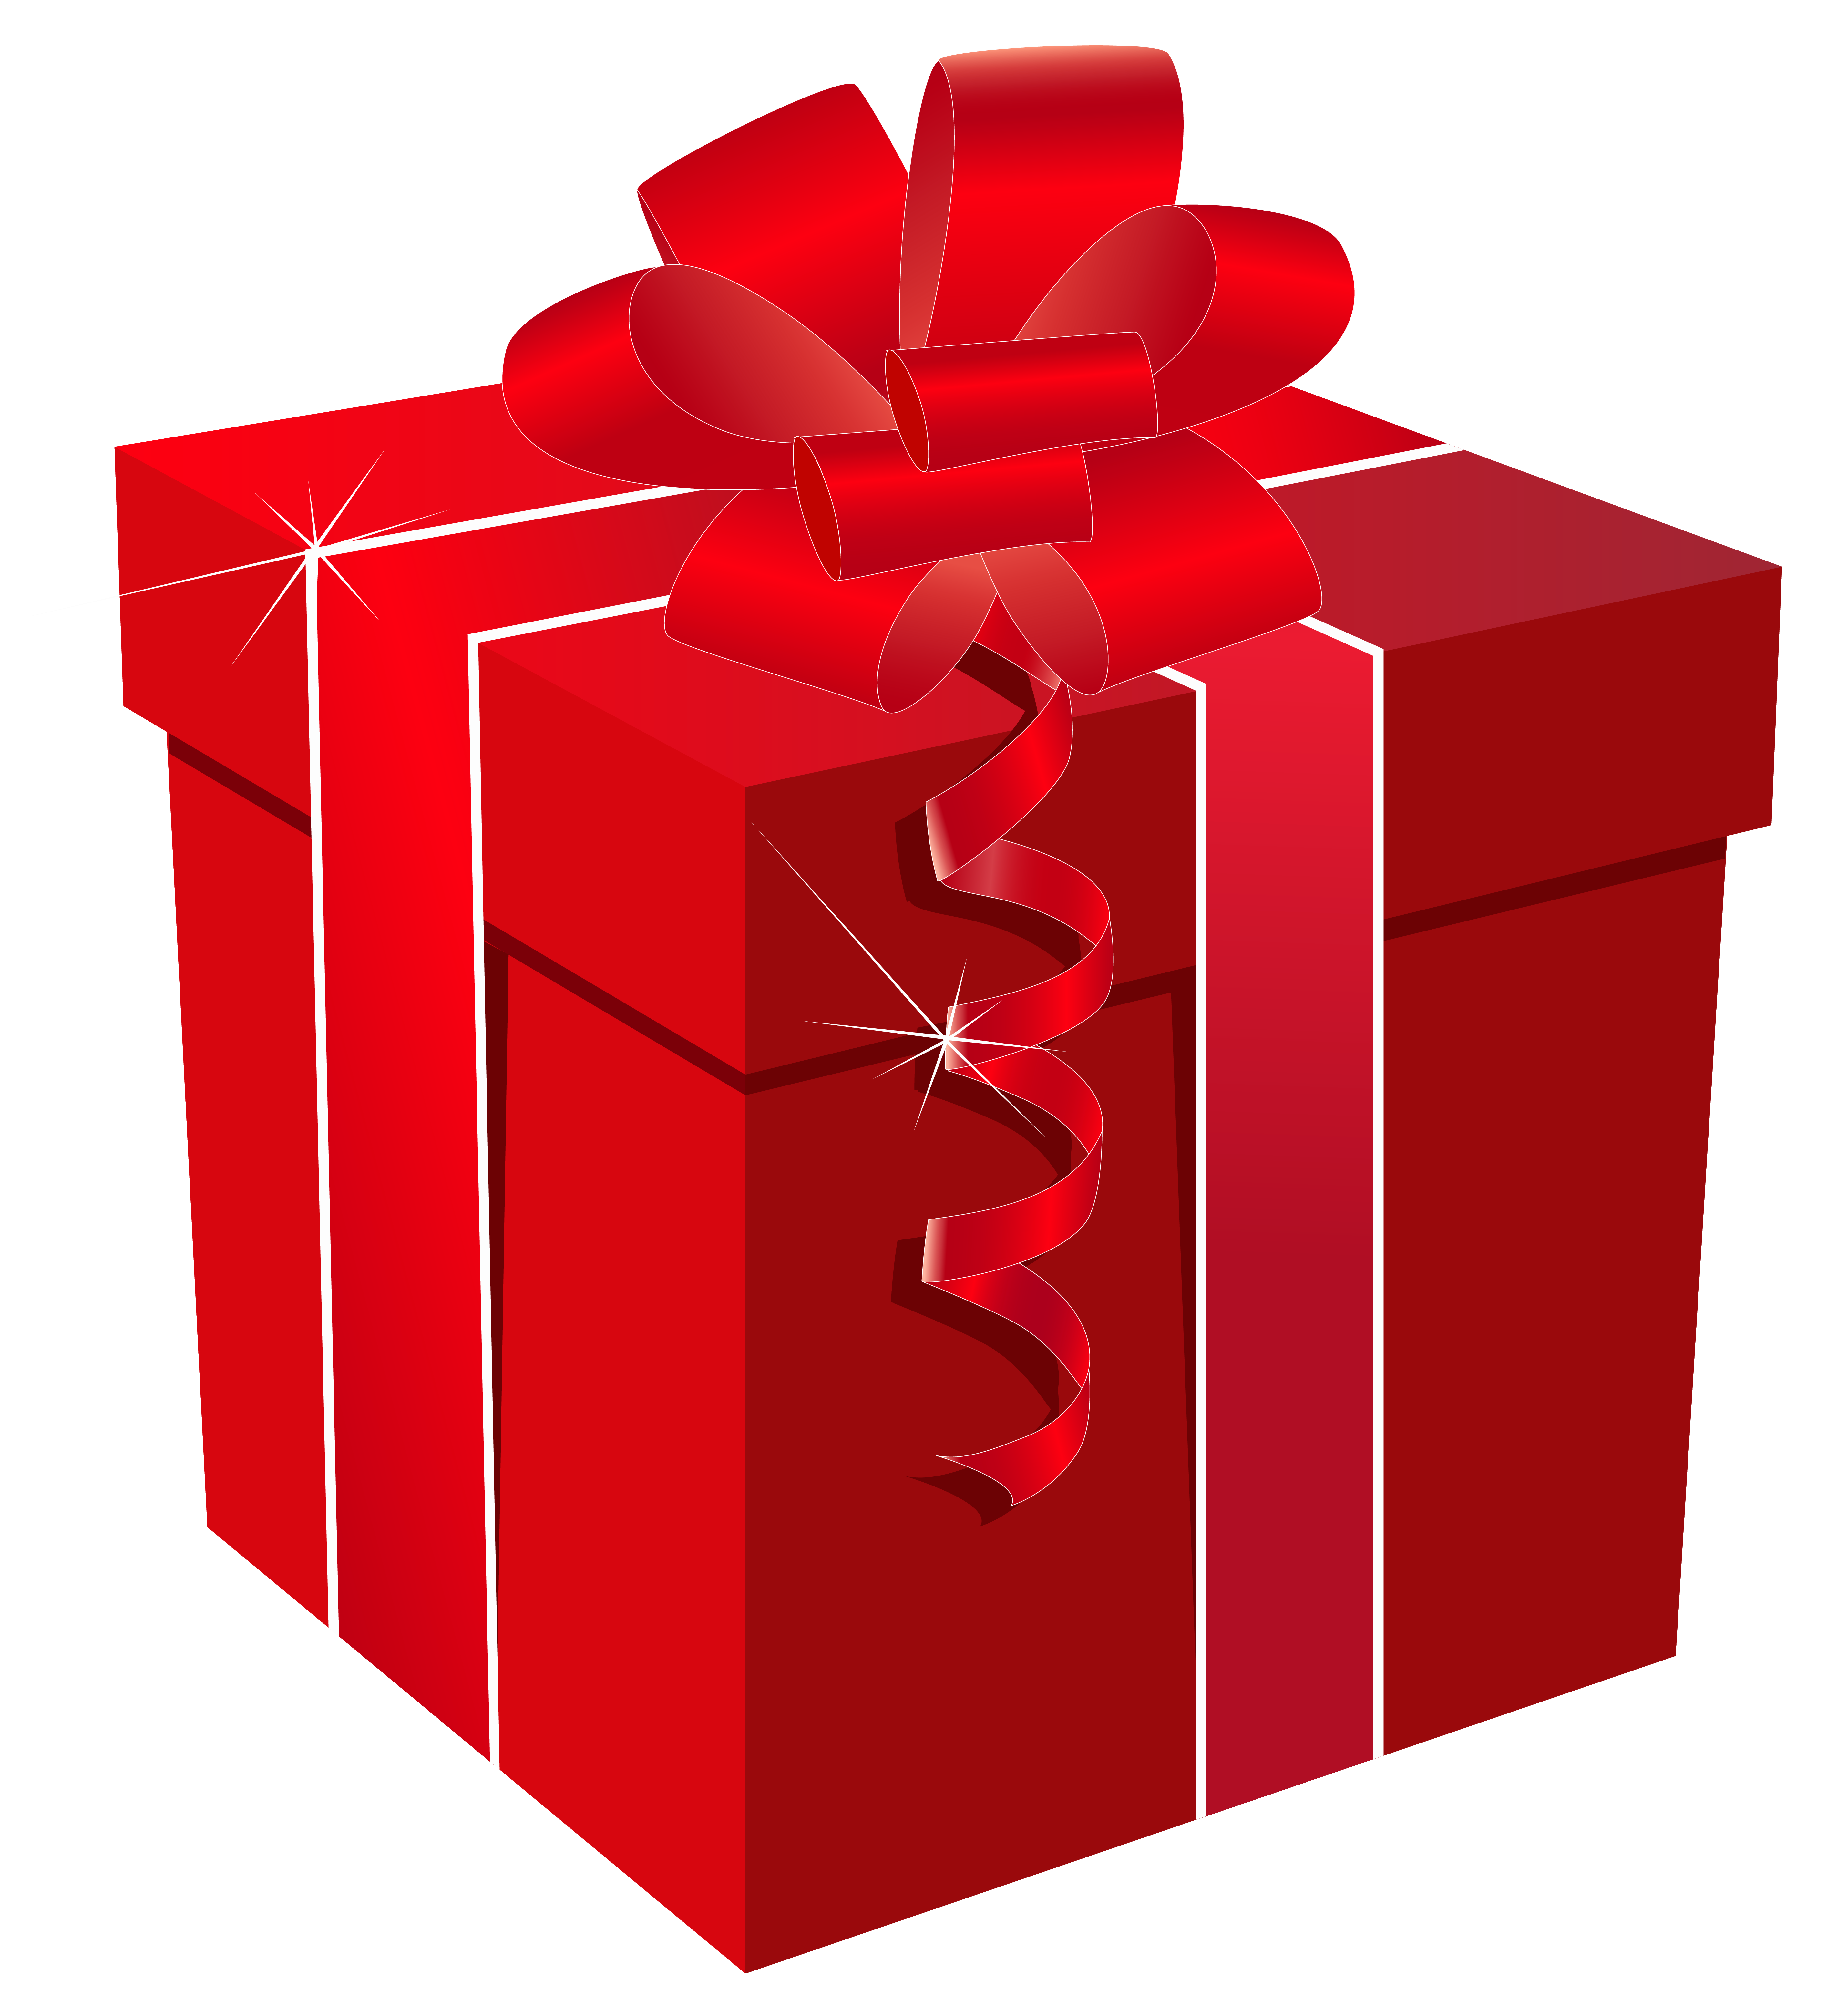 Red Gift Box with Red Bow PNG Clipart Image.